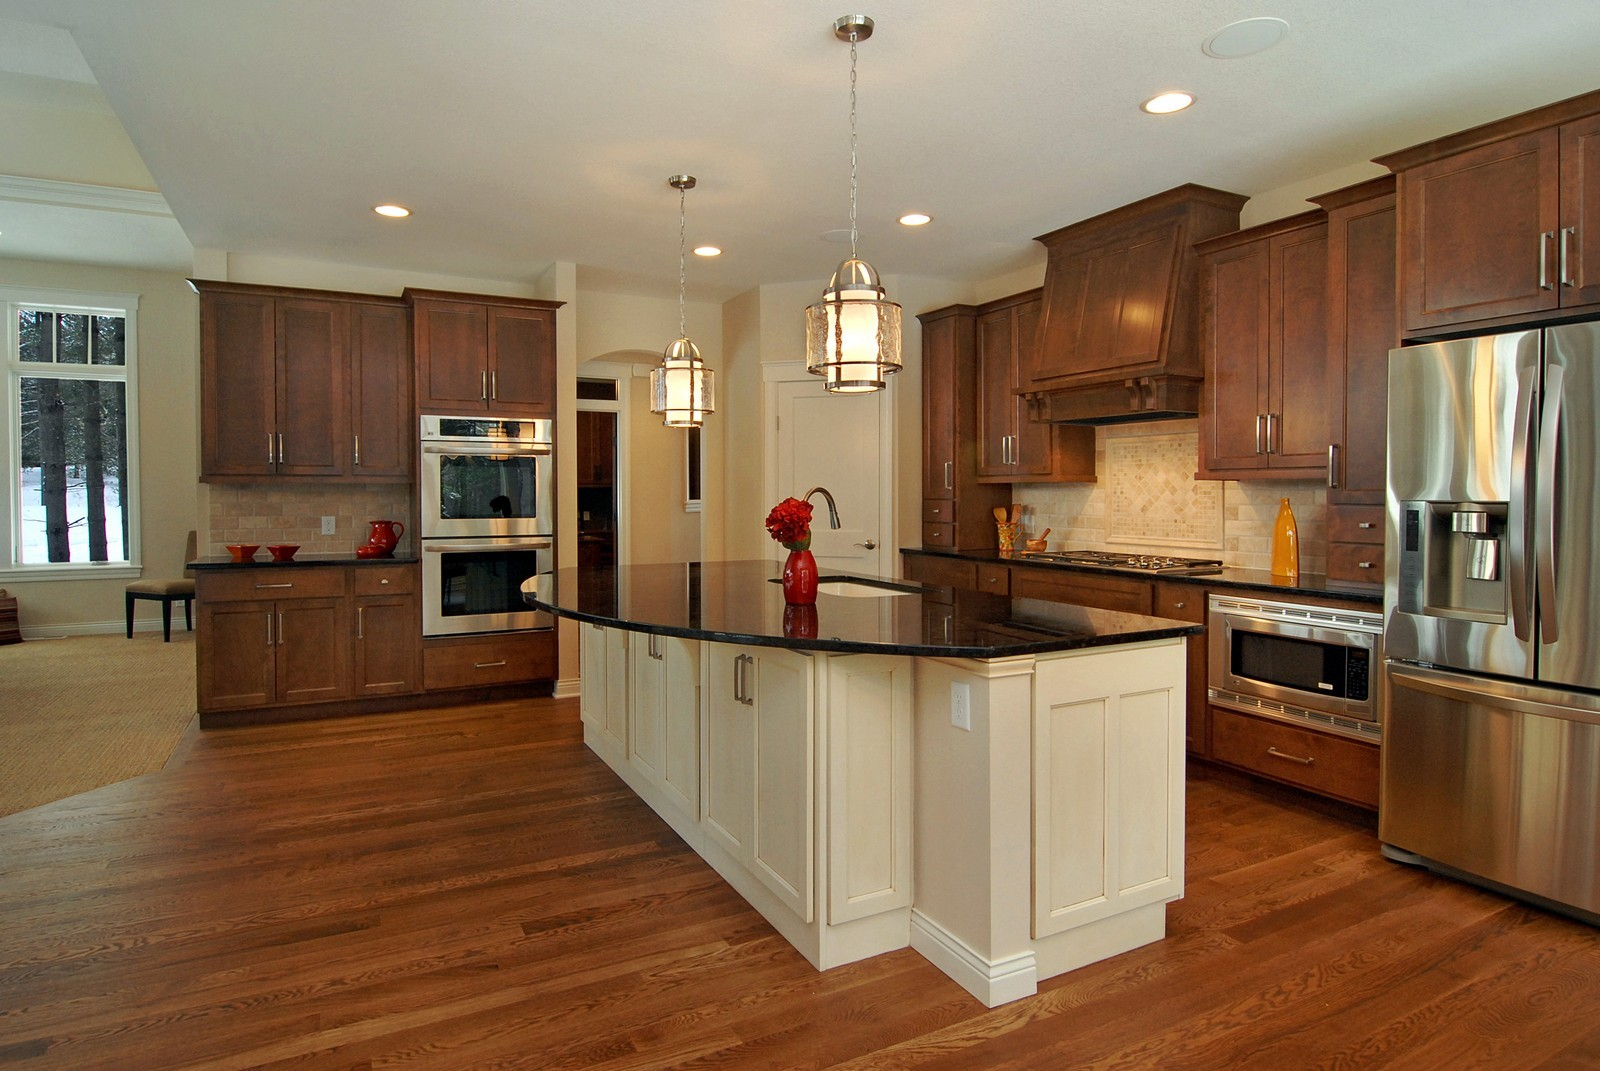 Real Estate Photography - 13220 24th Street North, West Lakeland, MN, 55082 - Kitchen